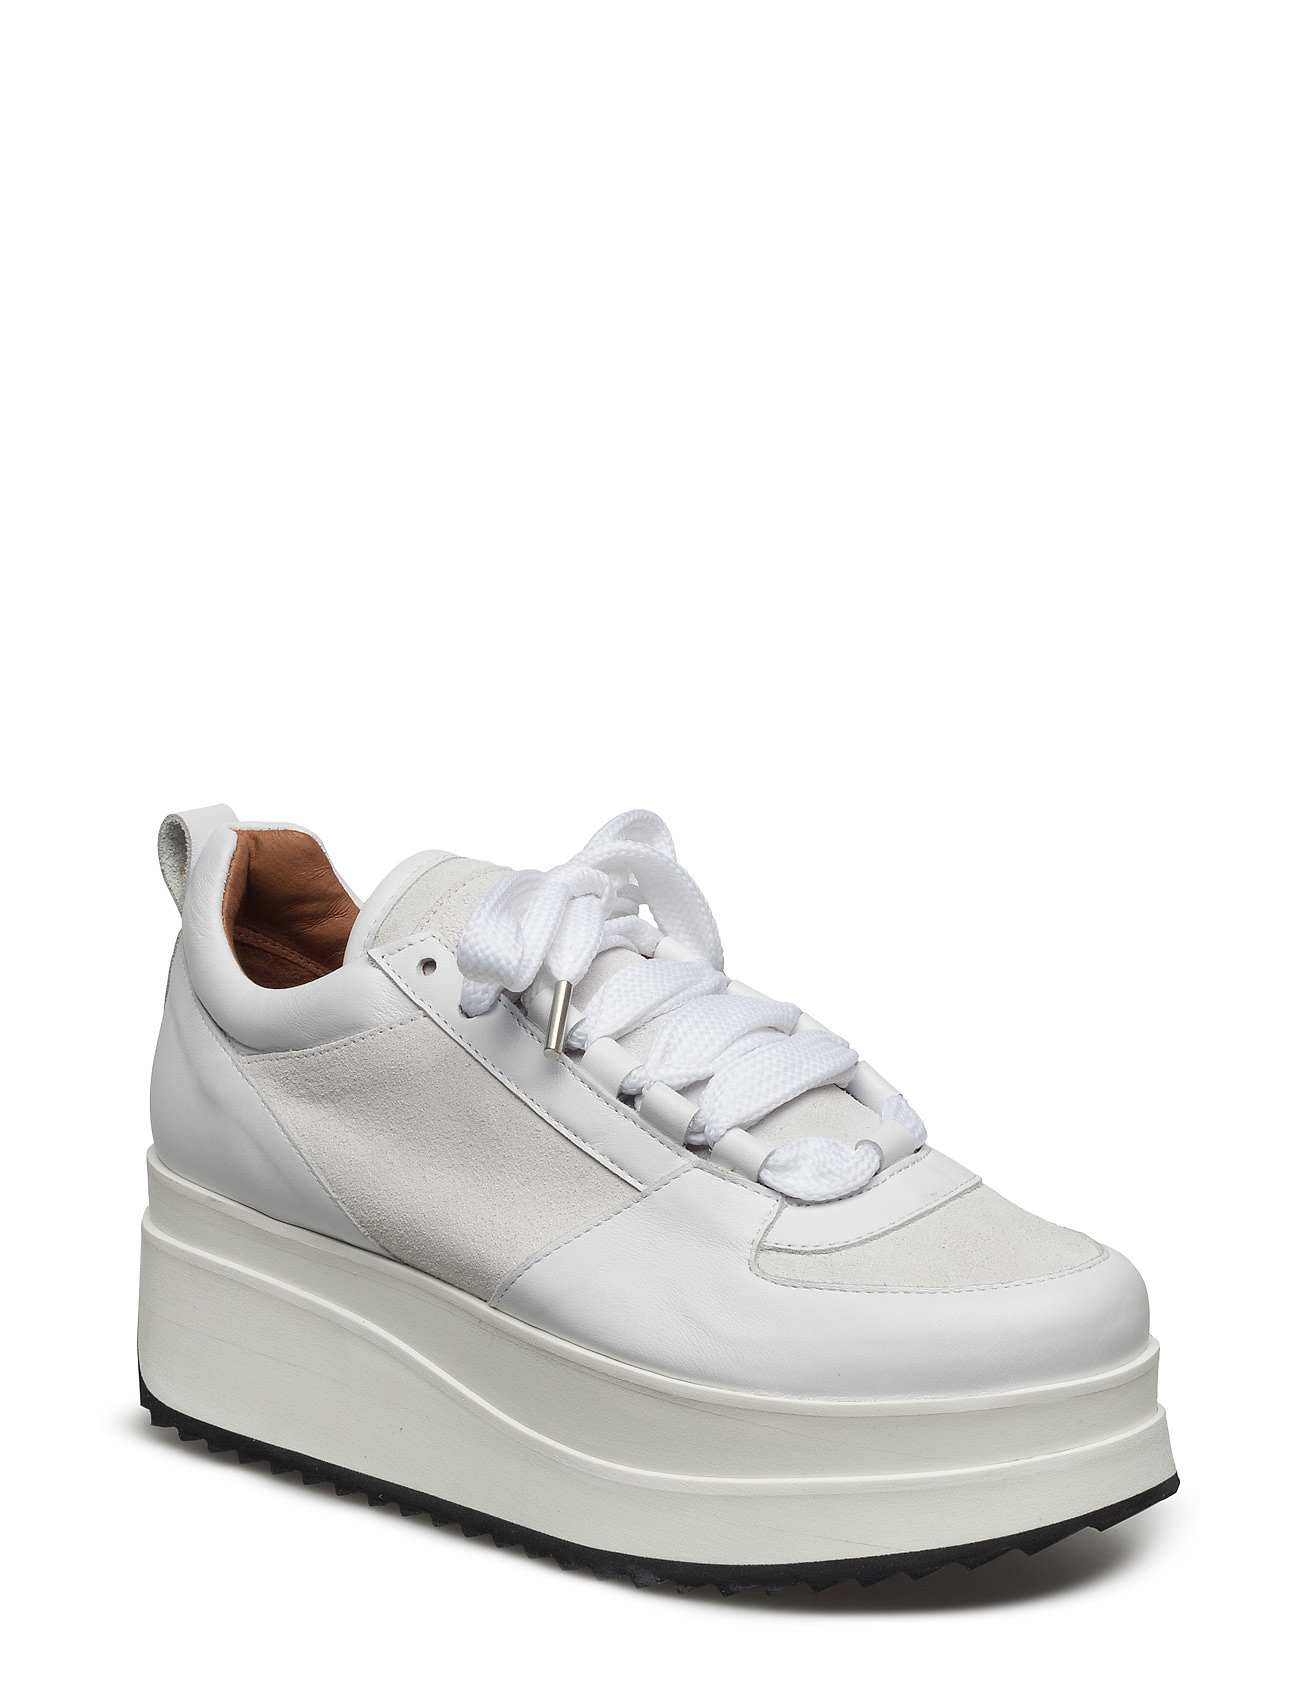 Ganni Naomi Leather Sneakers